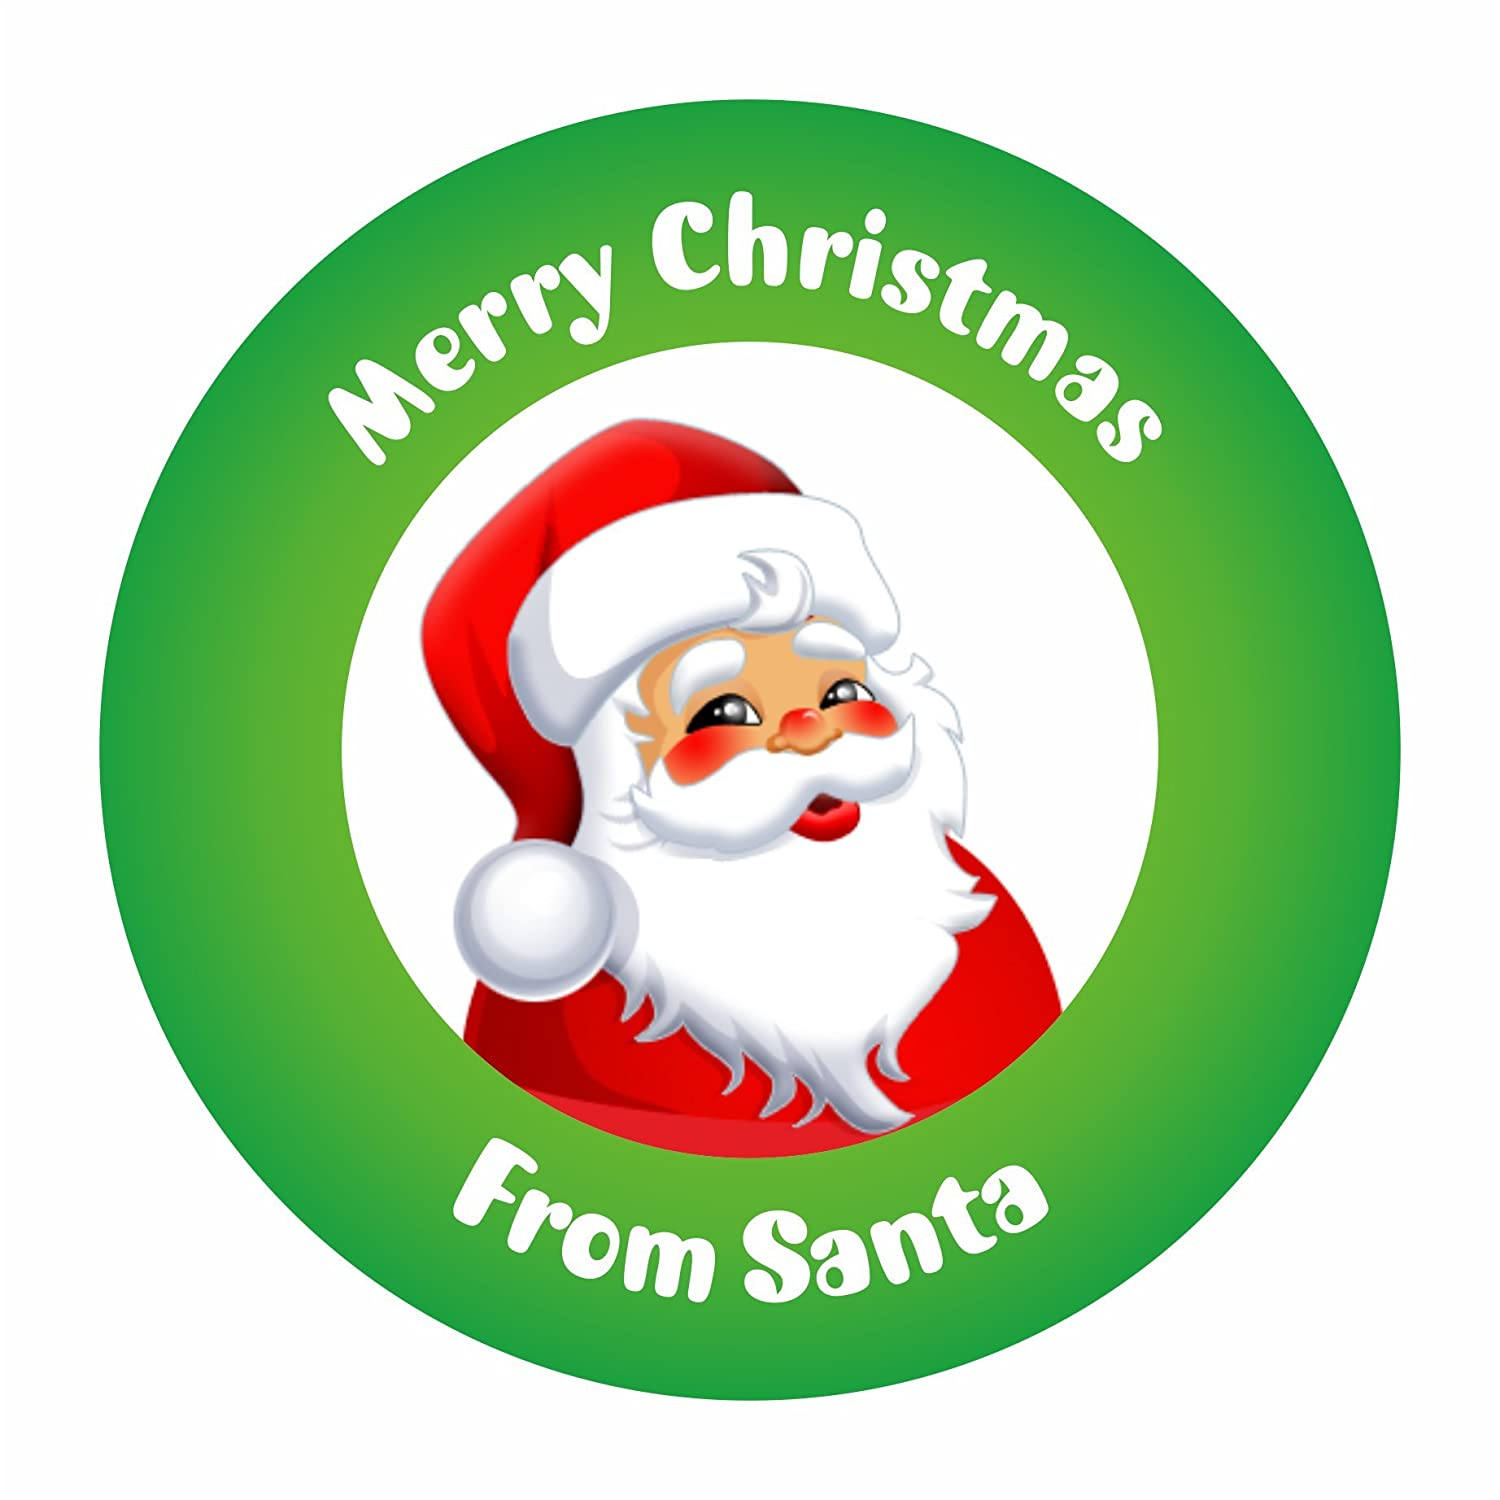 Merry Christmas Gift.Merry Christmas From Santa Christmas Gift Labels Stickers